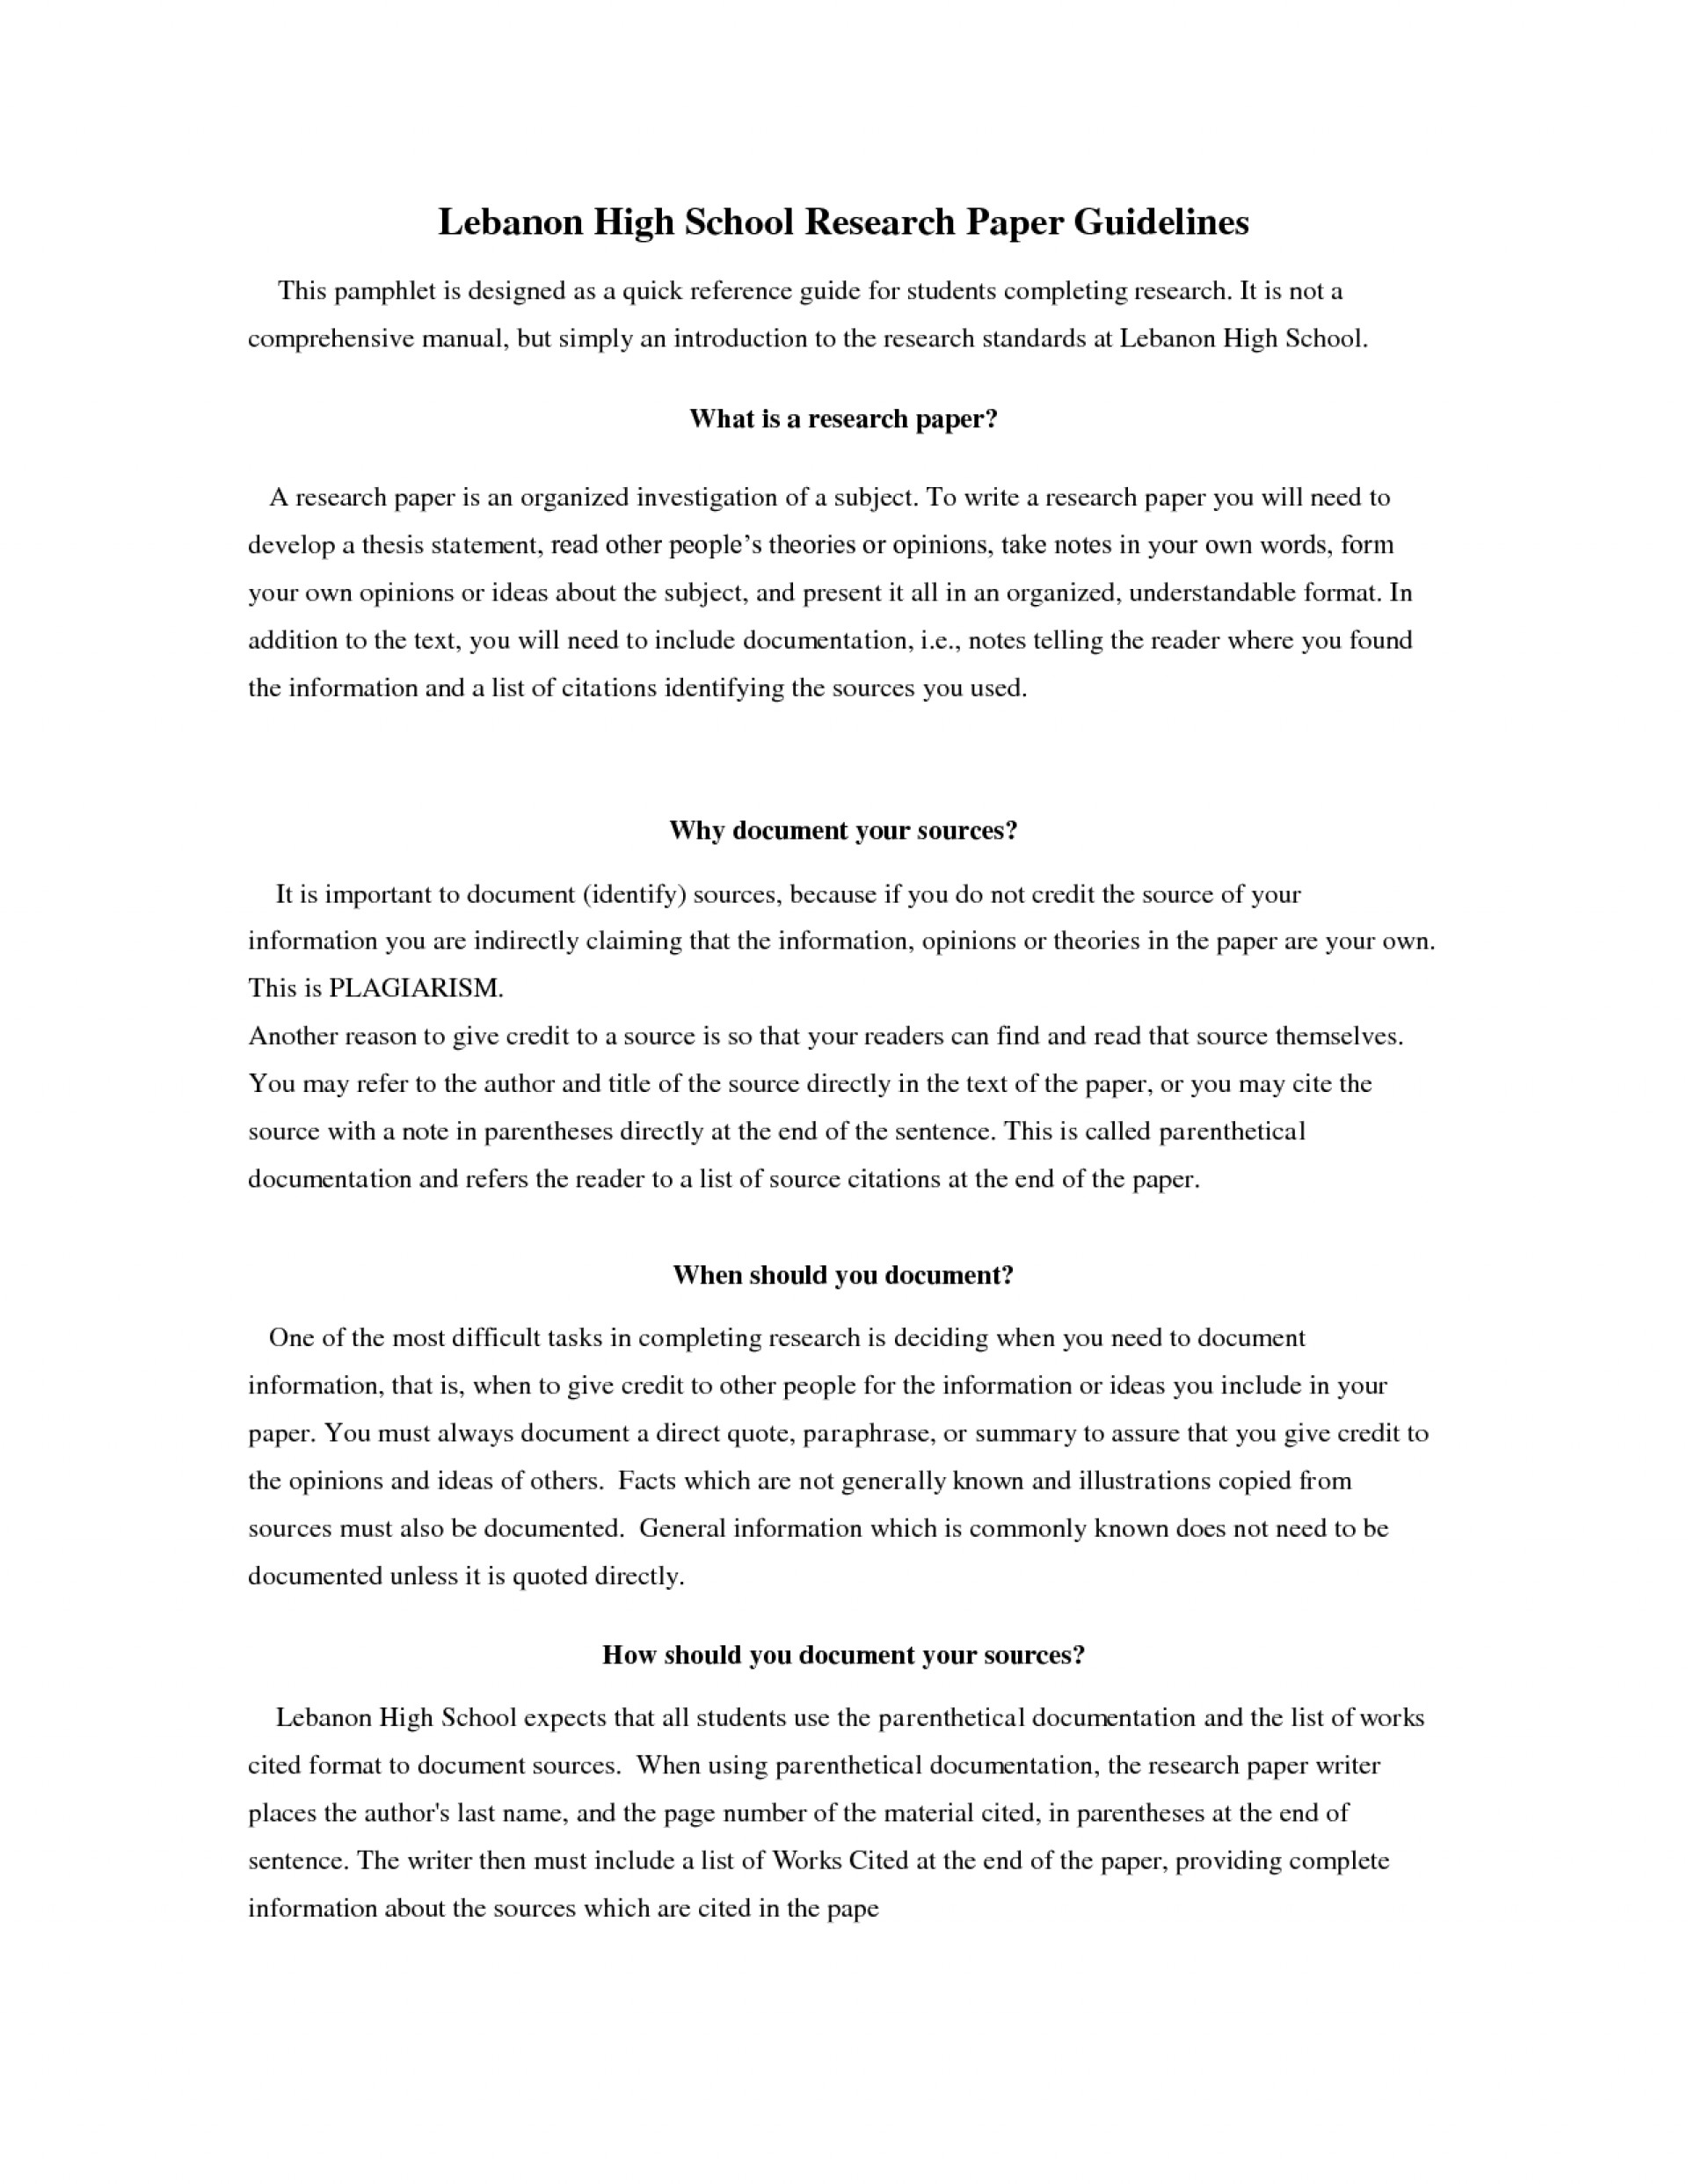 024 Research Paper Good Singular Topic Topics For High School 2019 Easy Reddit 1920